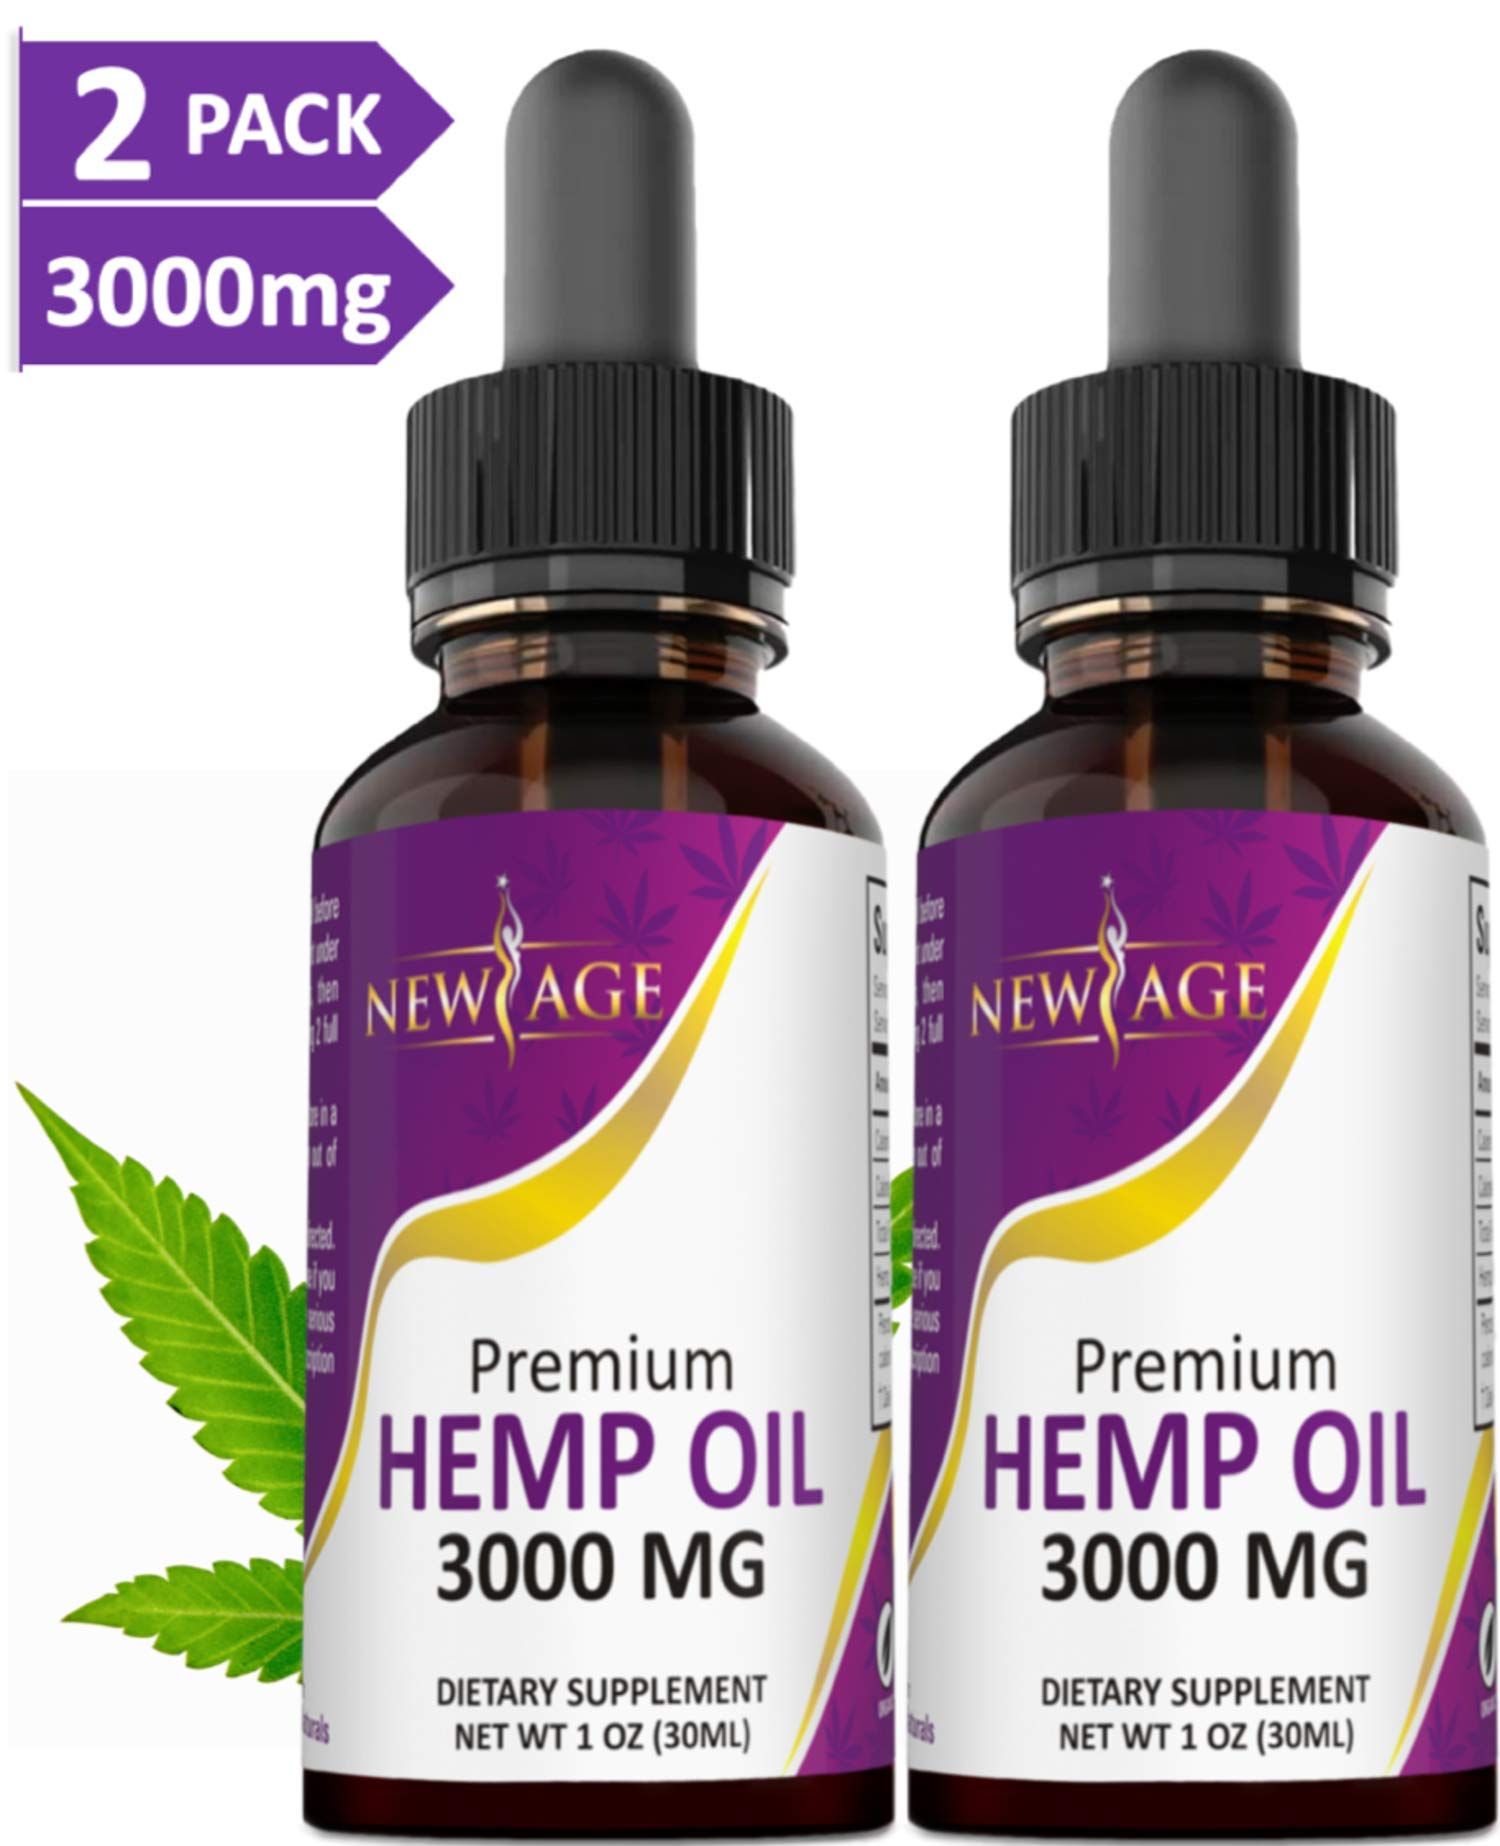 (2-Pack) 3000mg Hemp Oil Extract for Pain & Stress Relief - 3000mg of Pure Hemp Extract - Grown & Made in USA - 100% Natural Hemp Drops - Helps with Sleep, Skin & Hair. by New Age